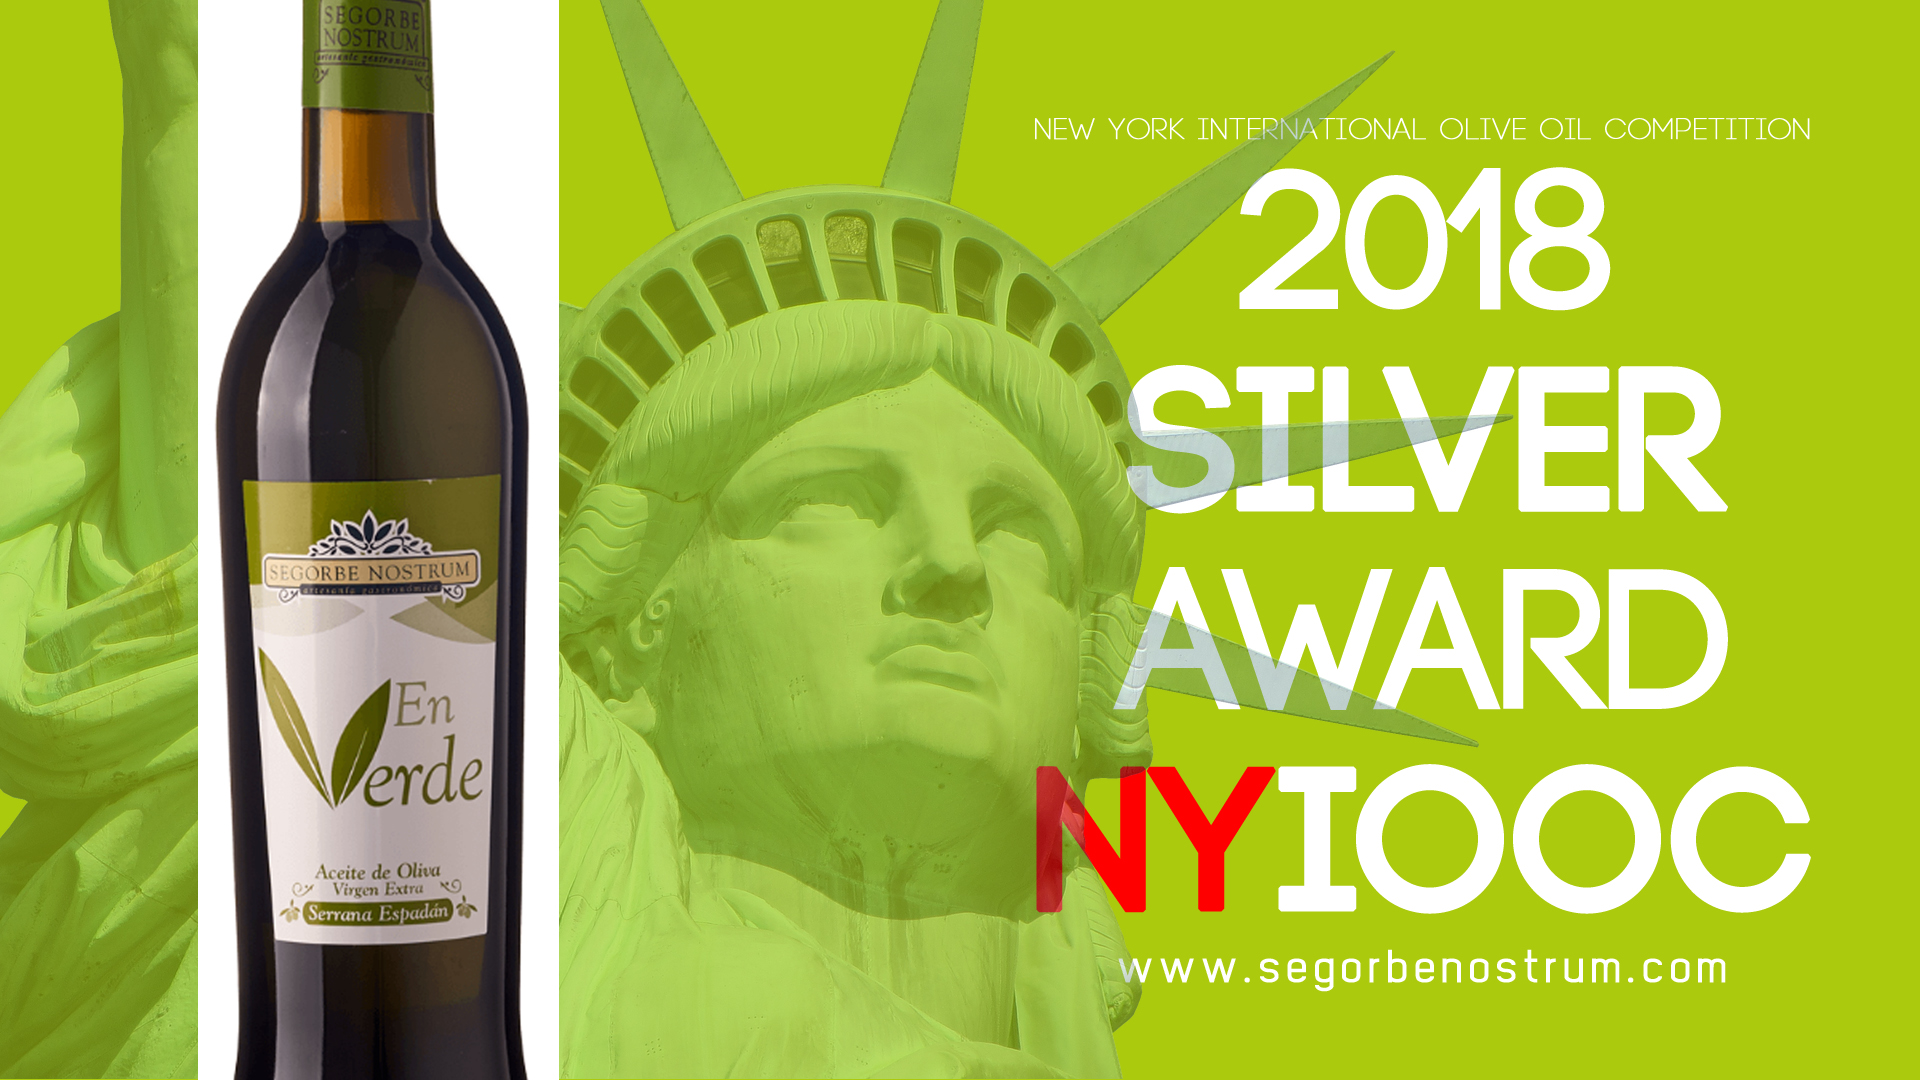 EnVerde-New-York-Olive-Oil-Competition